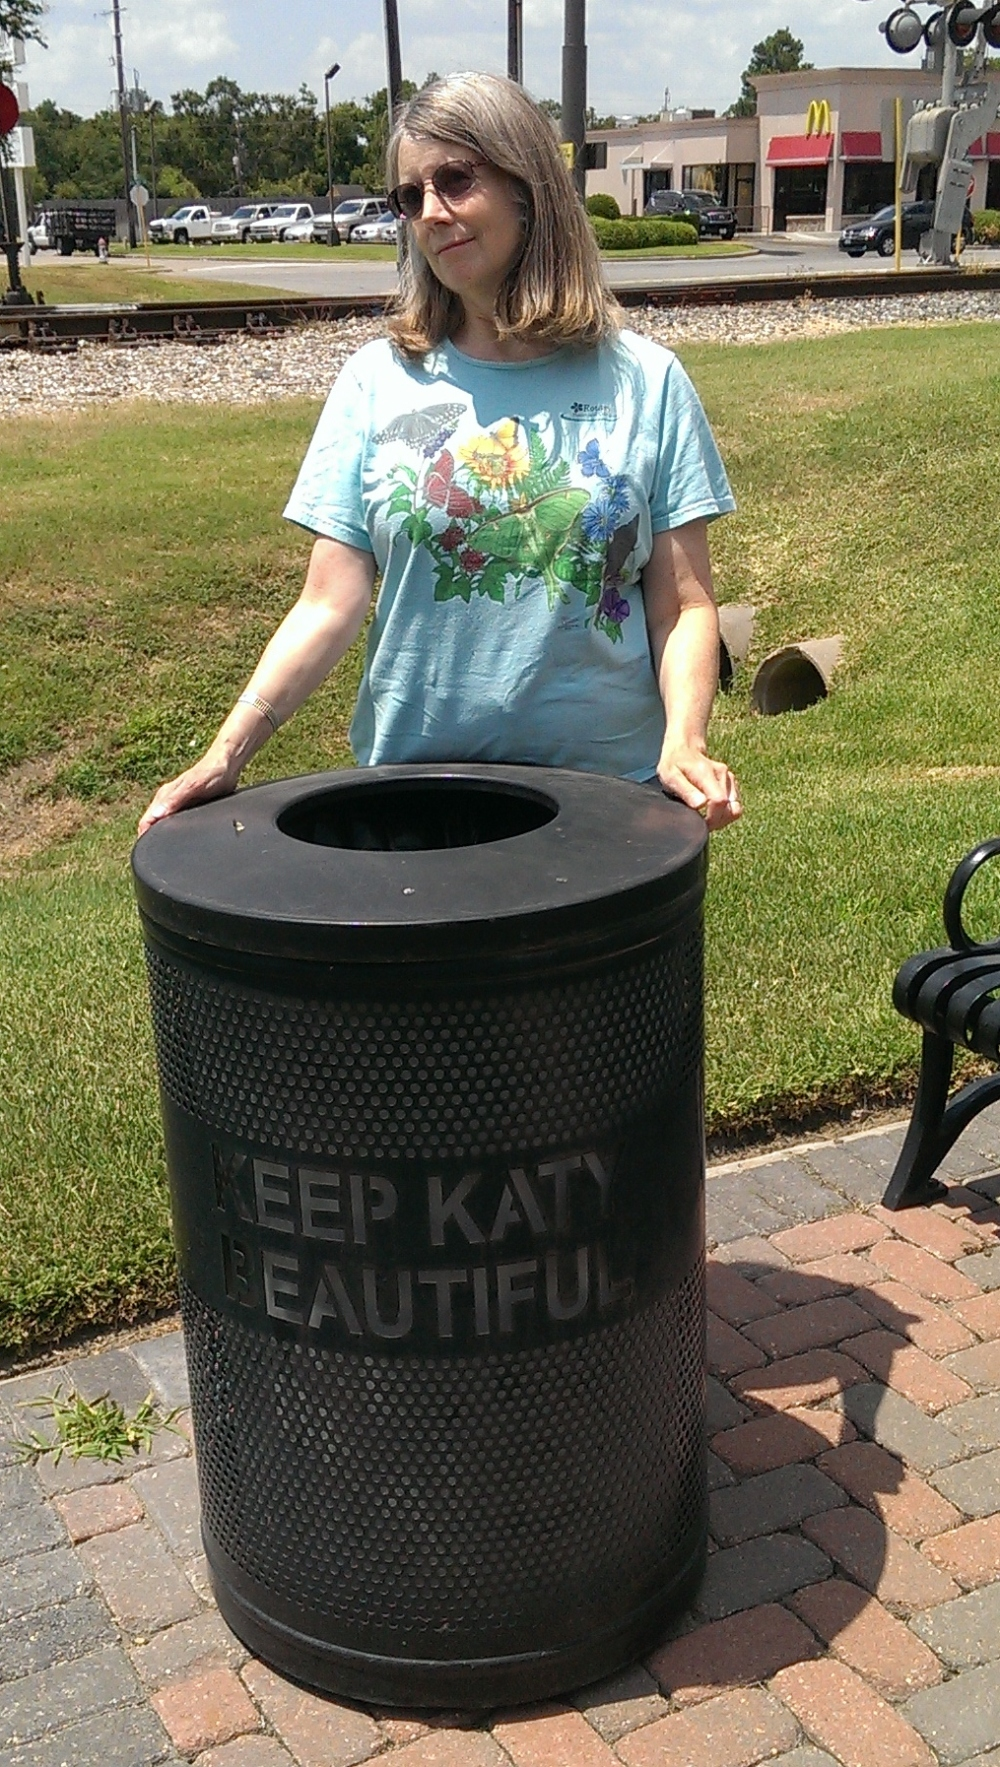 Keep Katy Beautiful! But I already am, darling!!